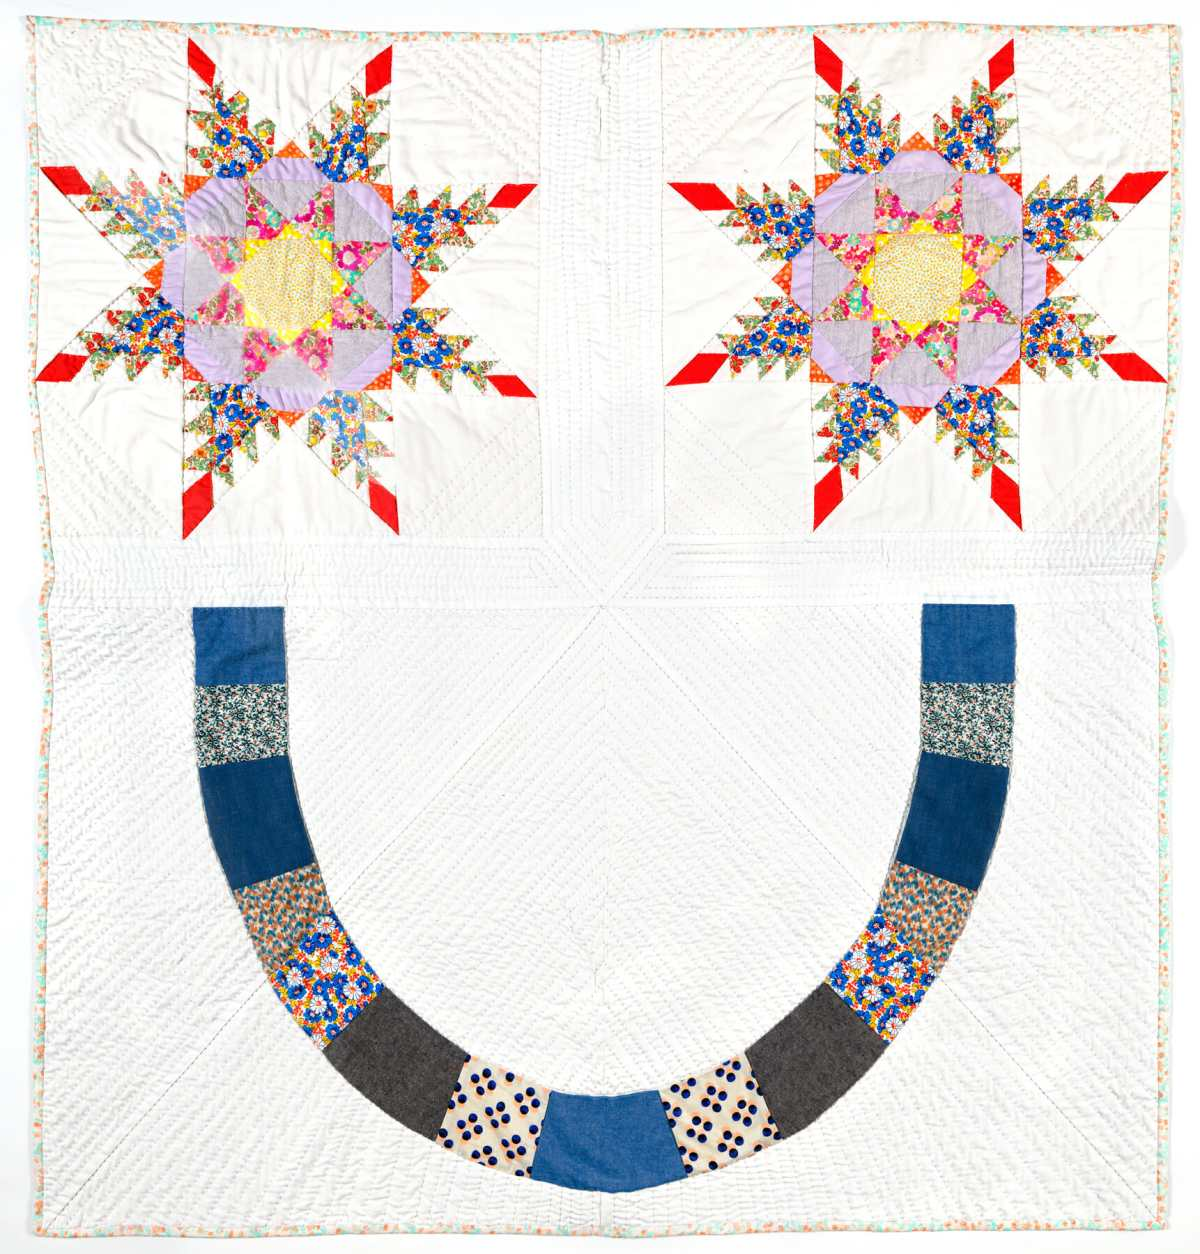 Quilty Pleasures: Piecework Collective Show in NY Sept. 20th-23rd